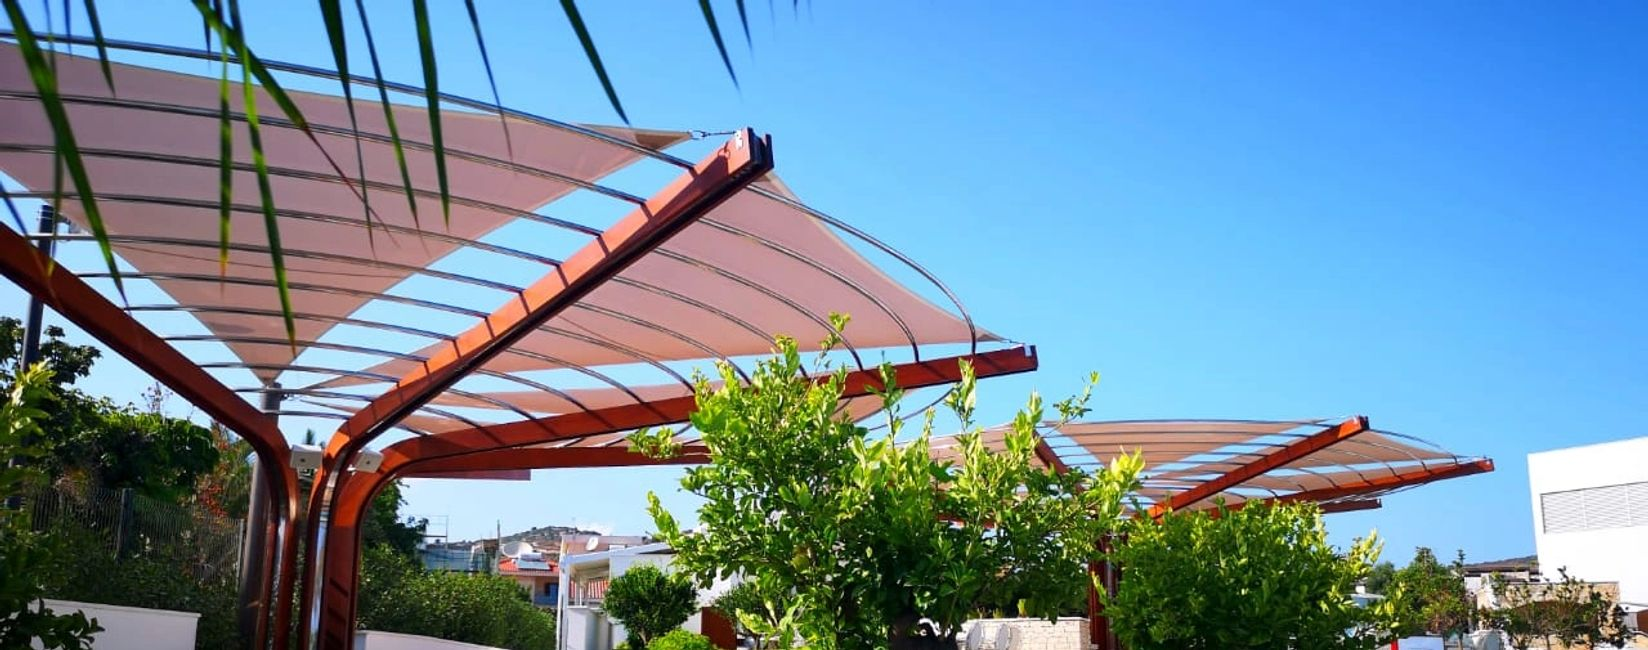 Shade canopy construction covered with shade cloth for sun shade at a hotel in Cyprus.